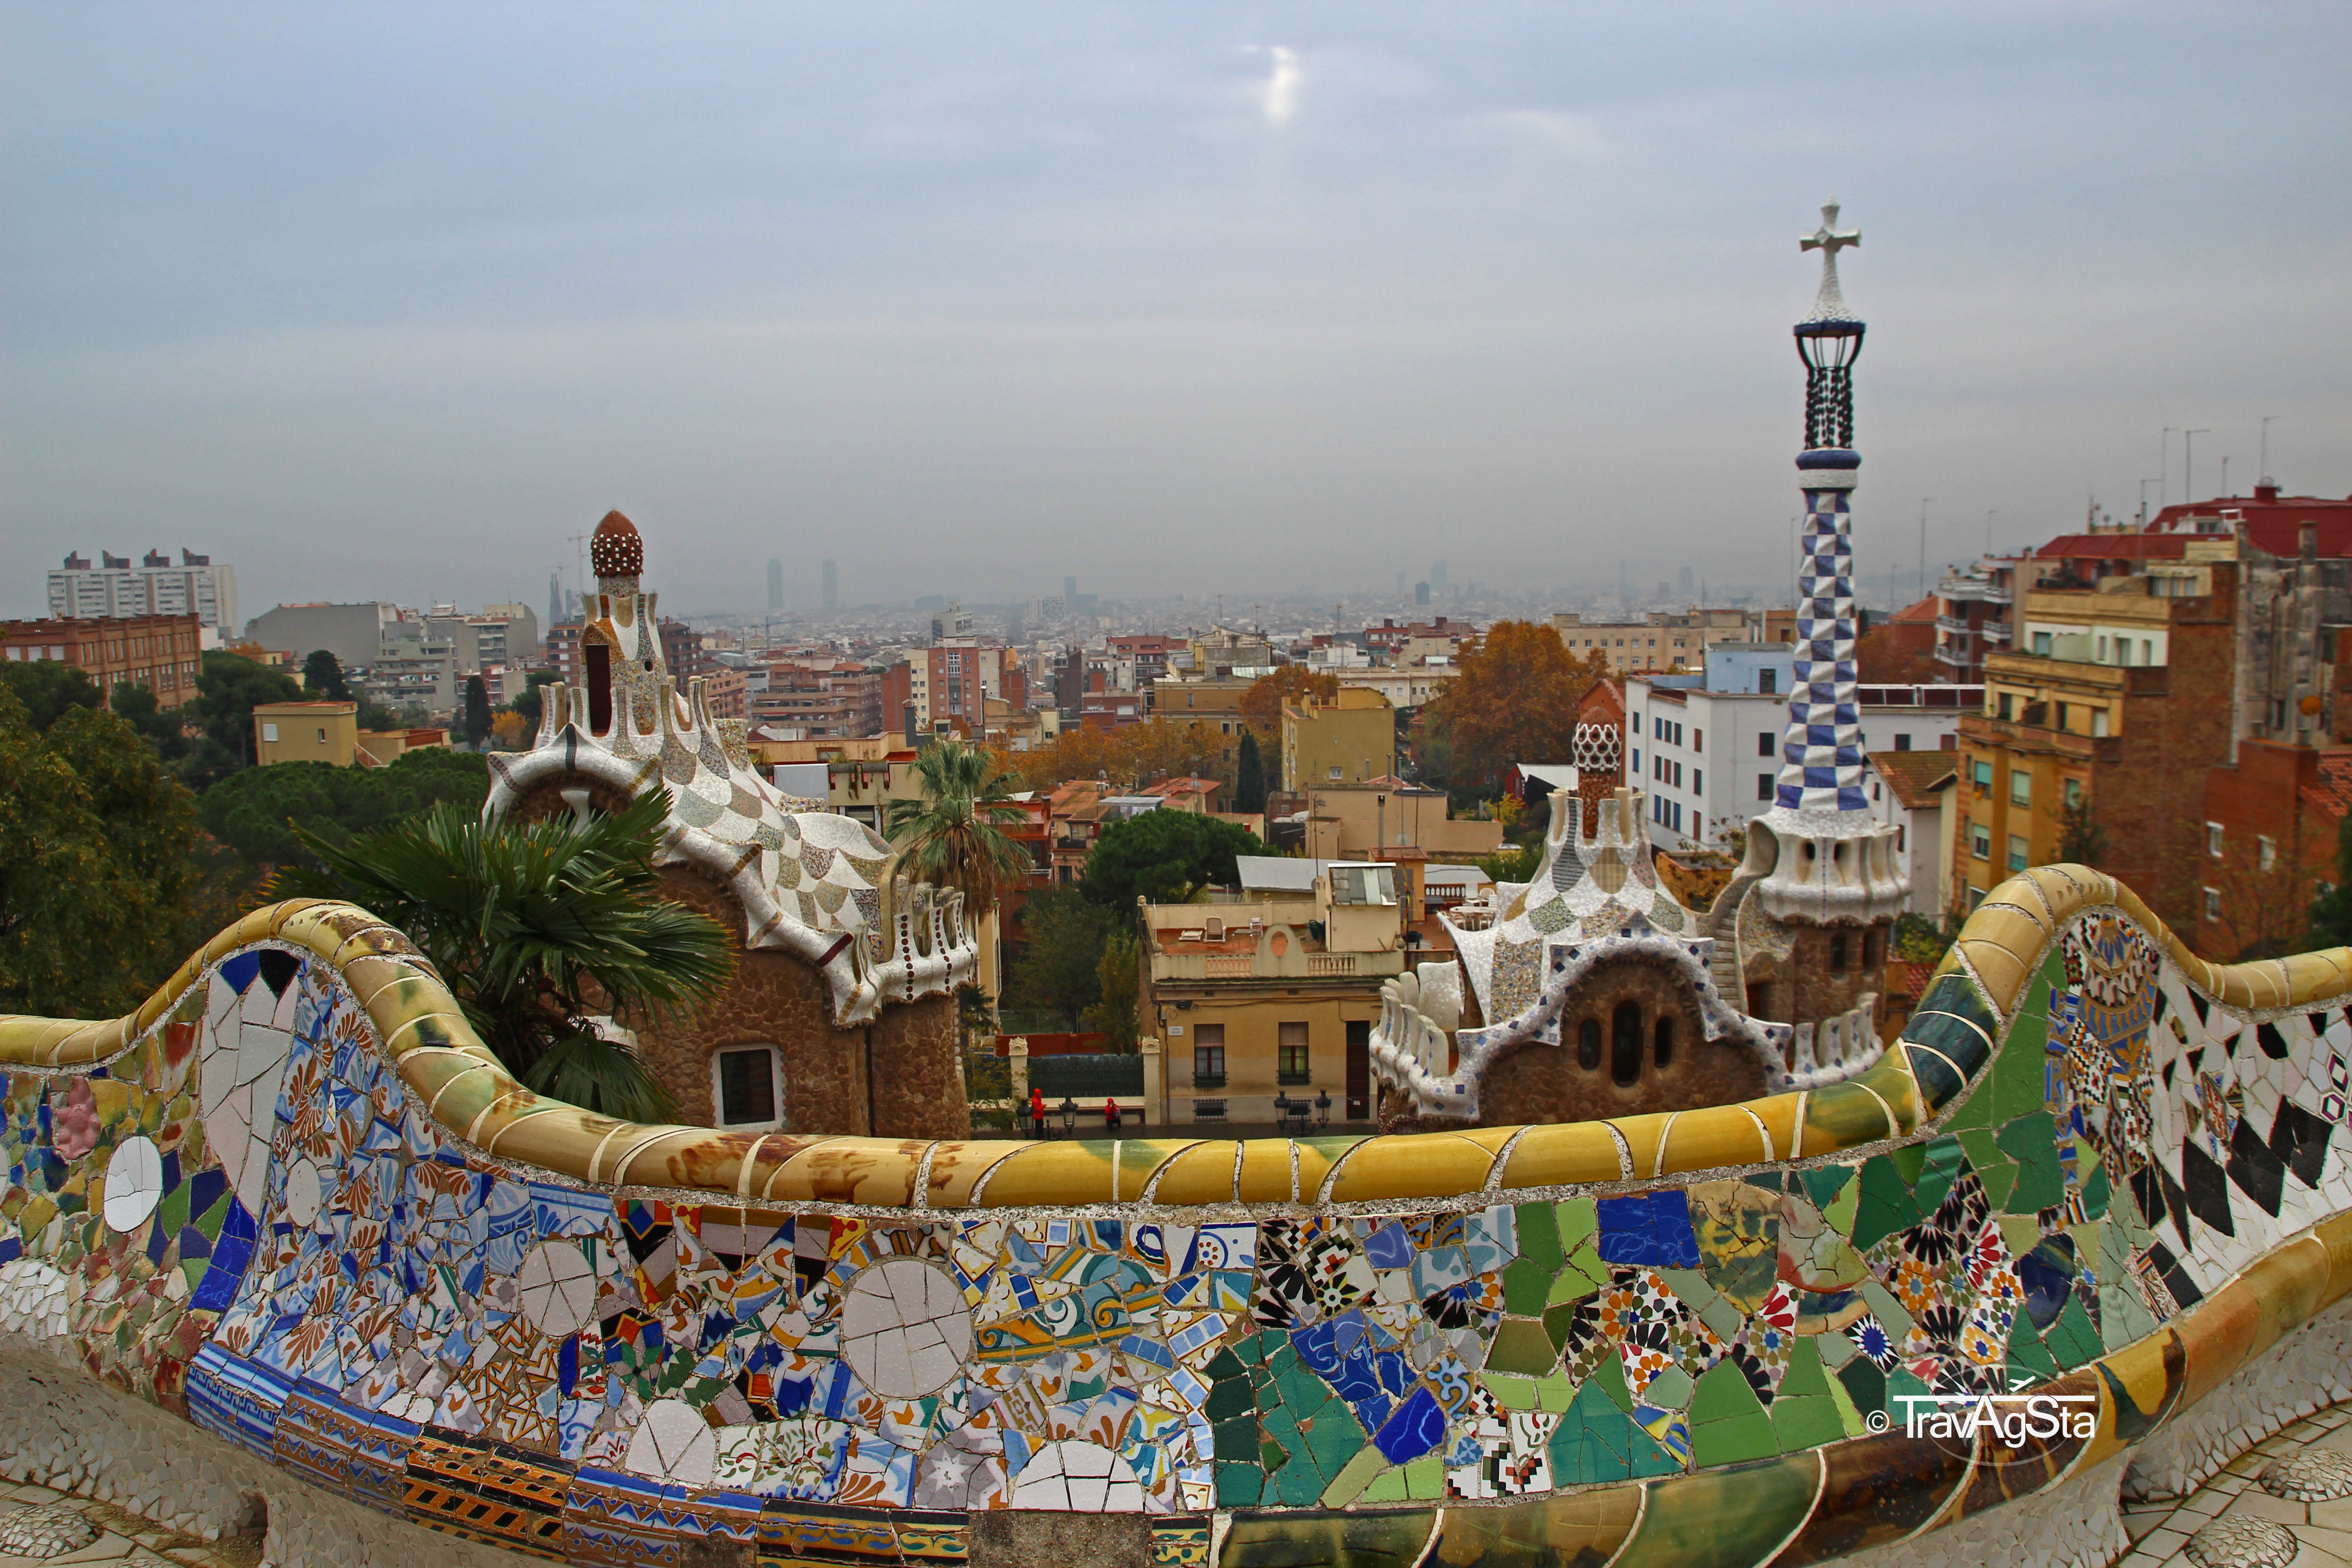 Citytrip to Barcelona – Gaudí, Iberico & a little bit of Christmas! Part 1